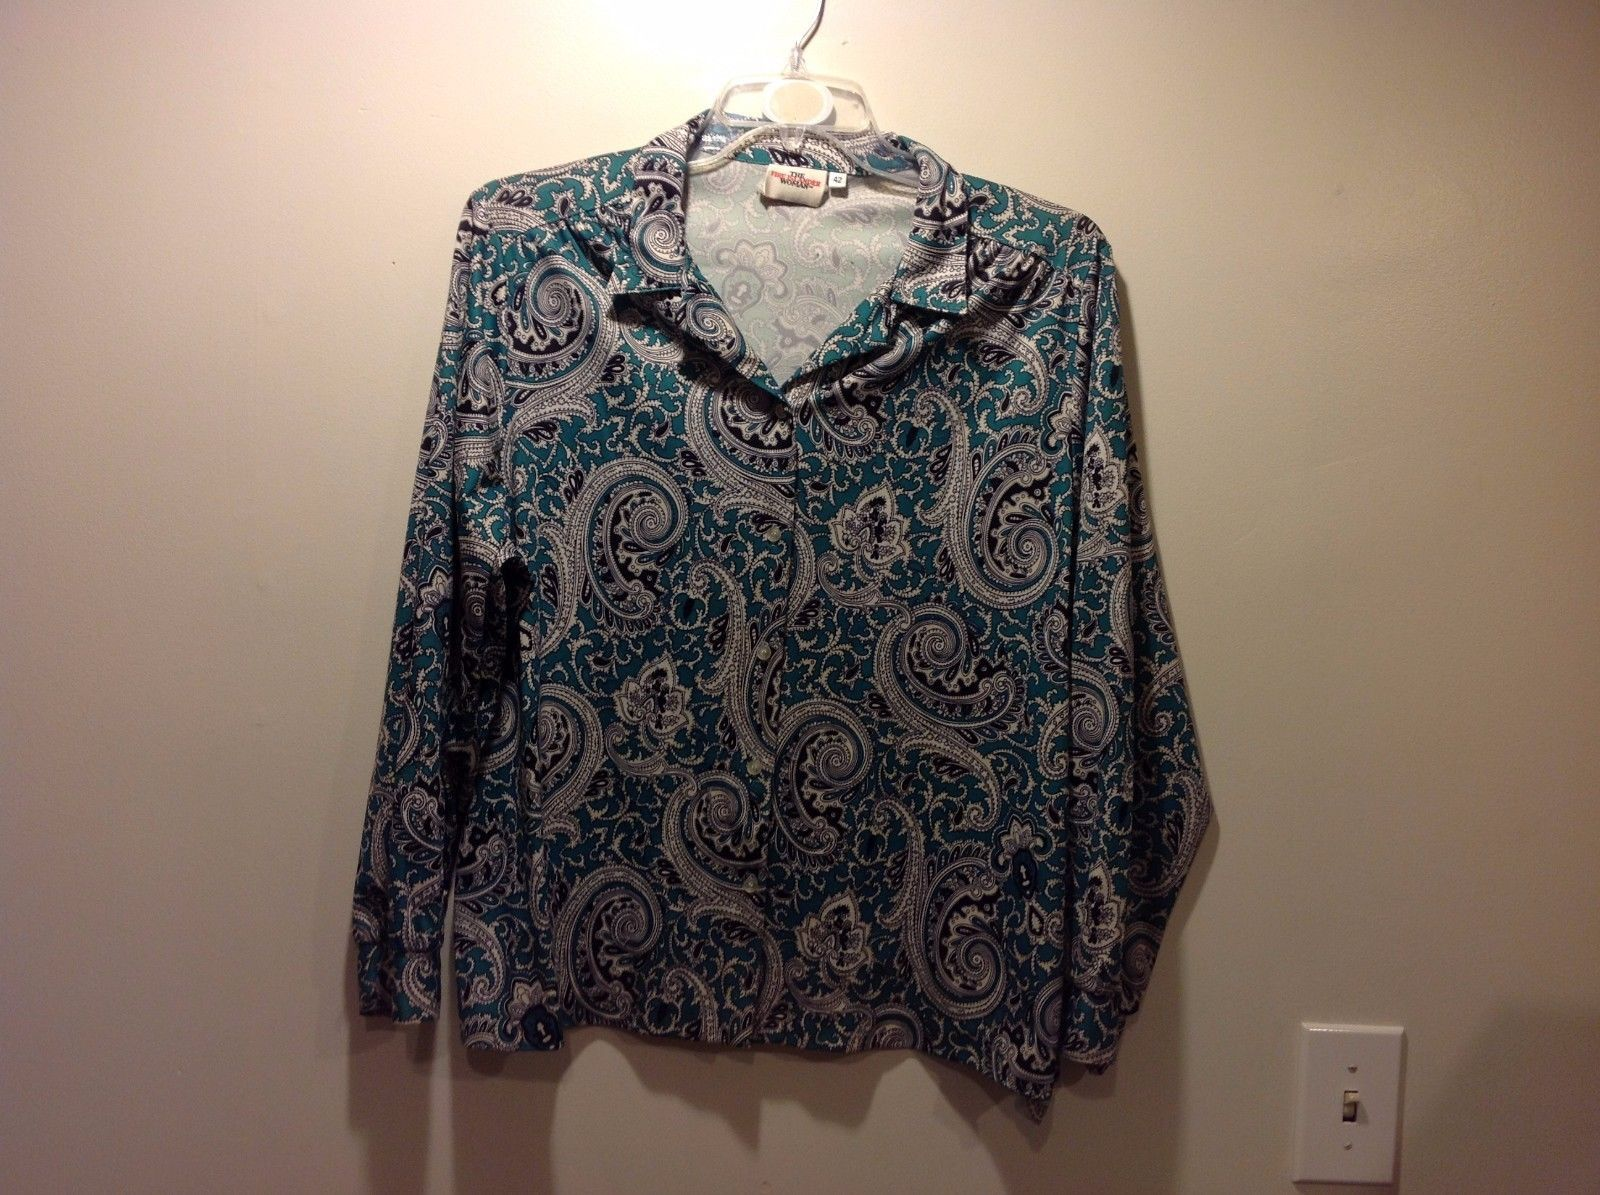 The Fire Islander Woman Paisley Patterned Button Up Blouse Sz 42